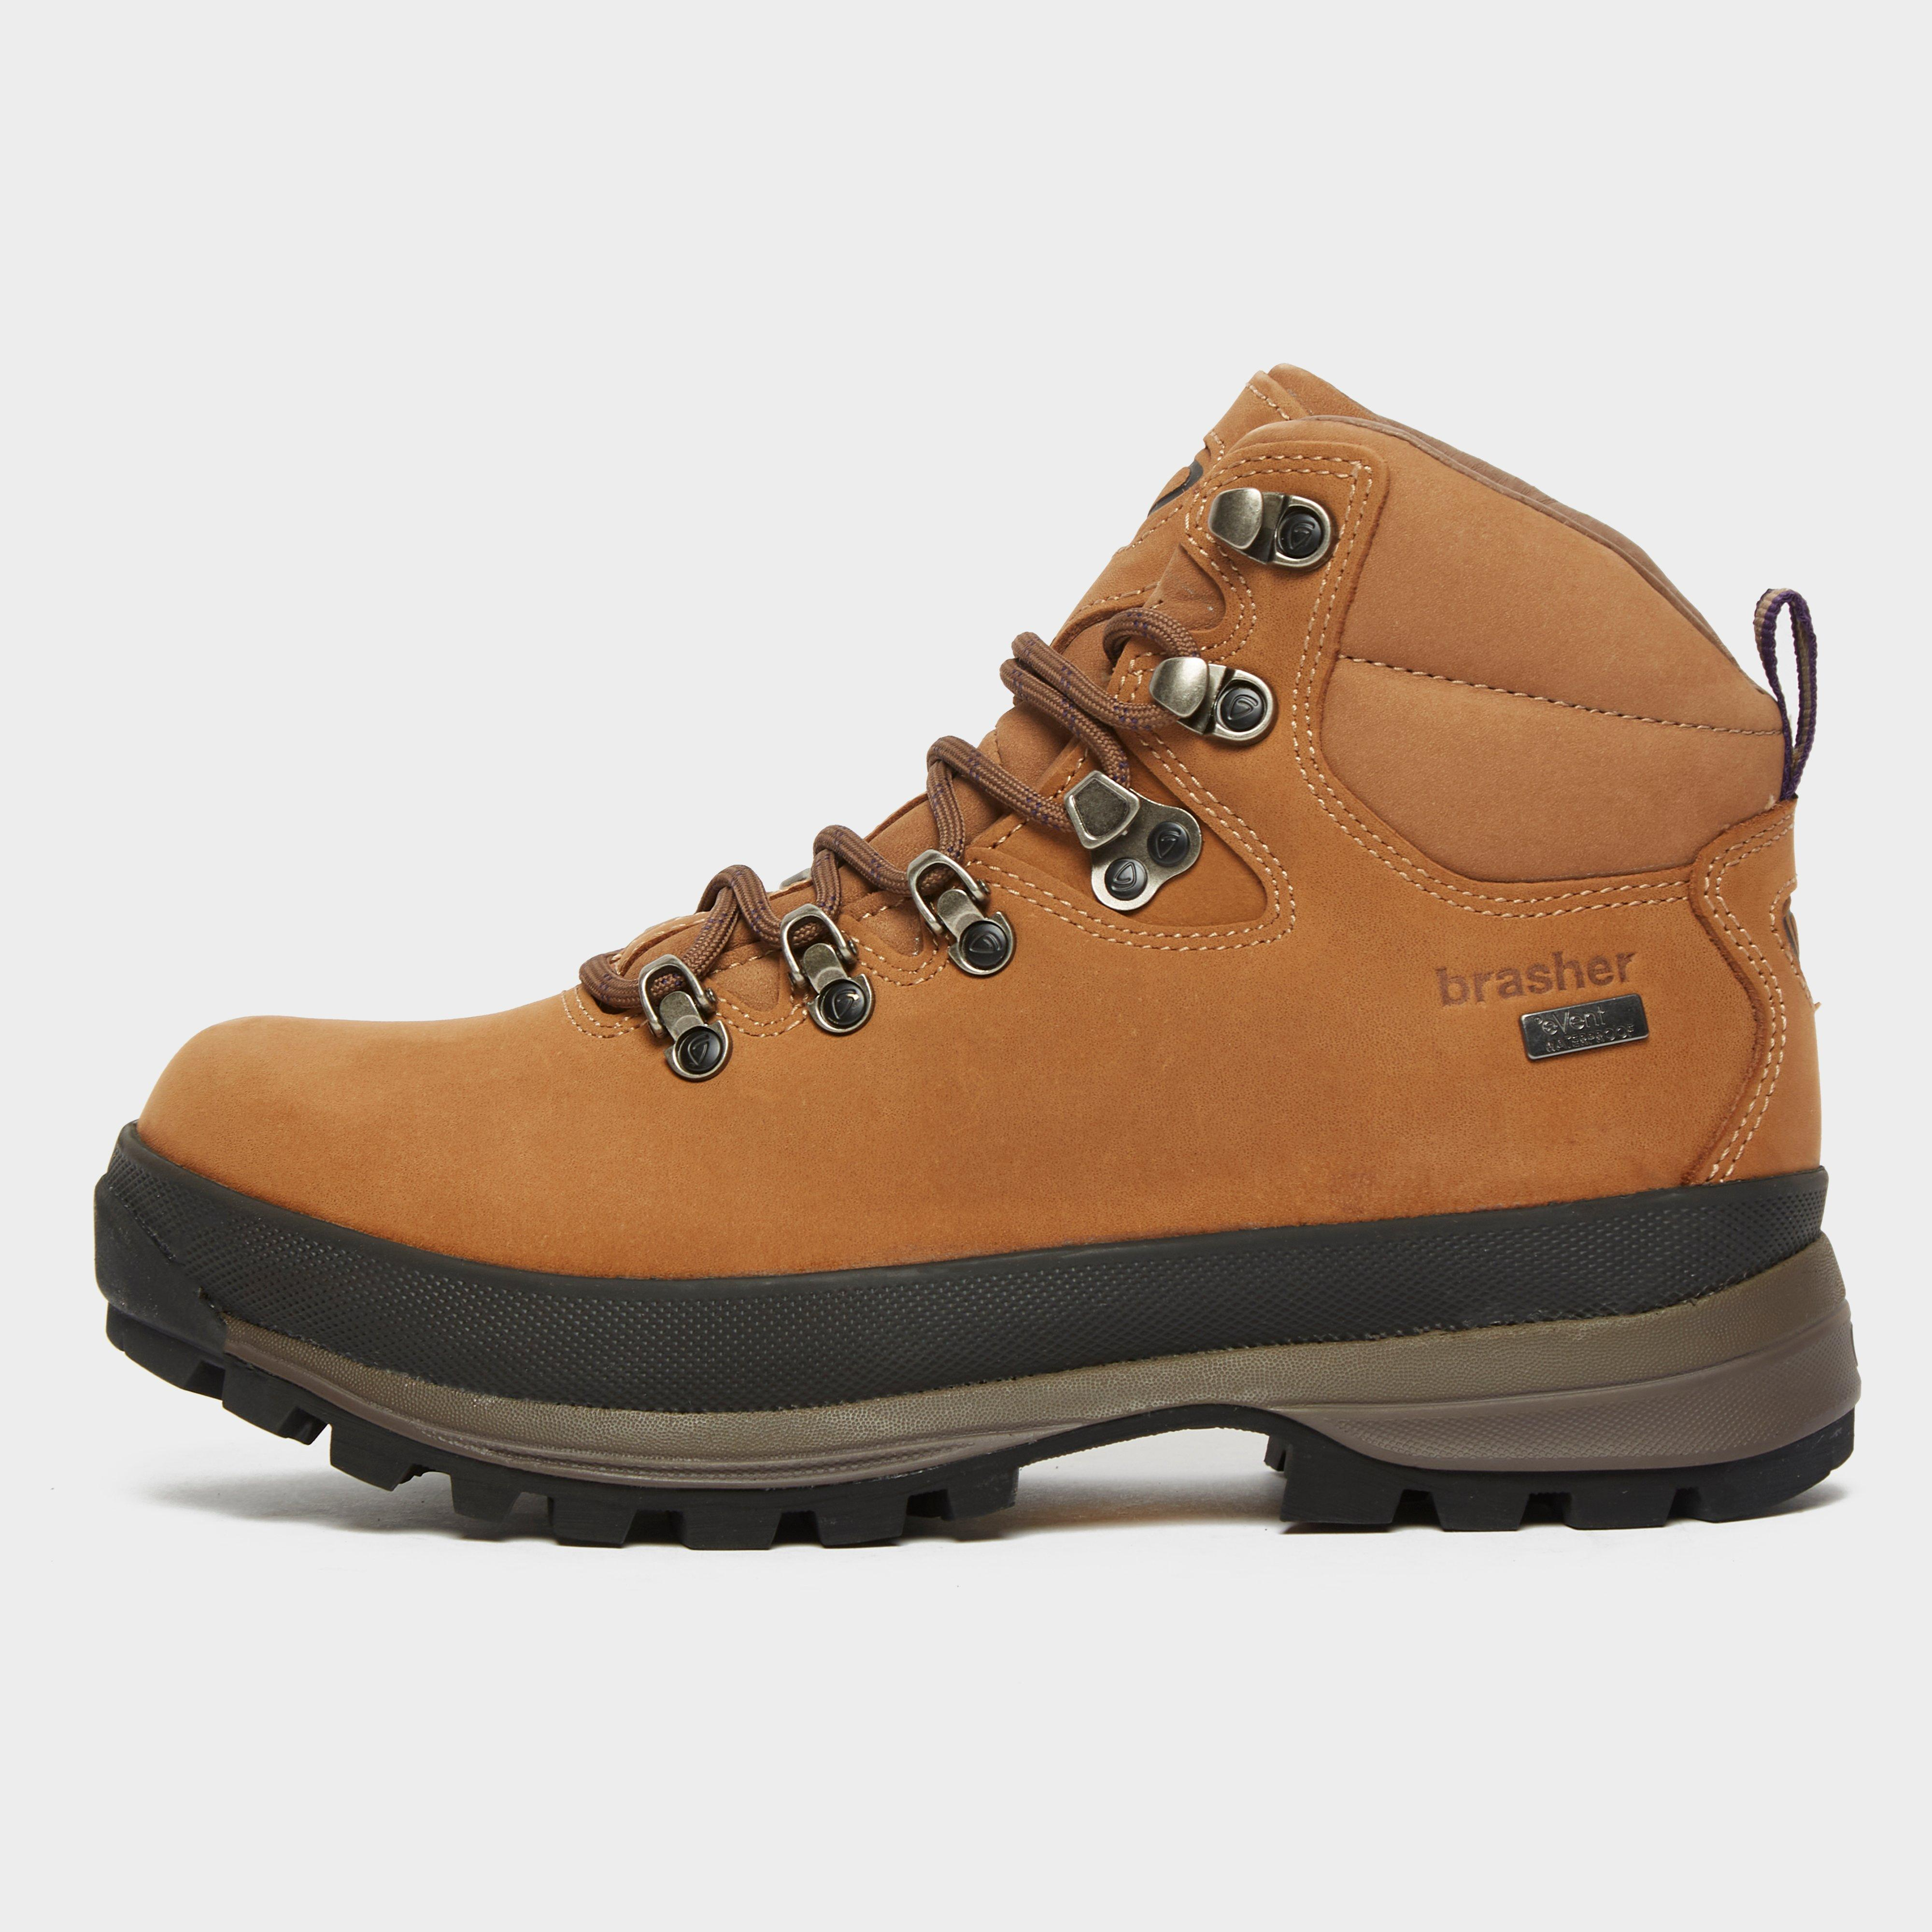 Millets are the UK's leading retailer of Outdoor Clothing, Footwear & Equipment. With over 90 UK stores and the lowest prices, shop online or in store today.